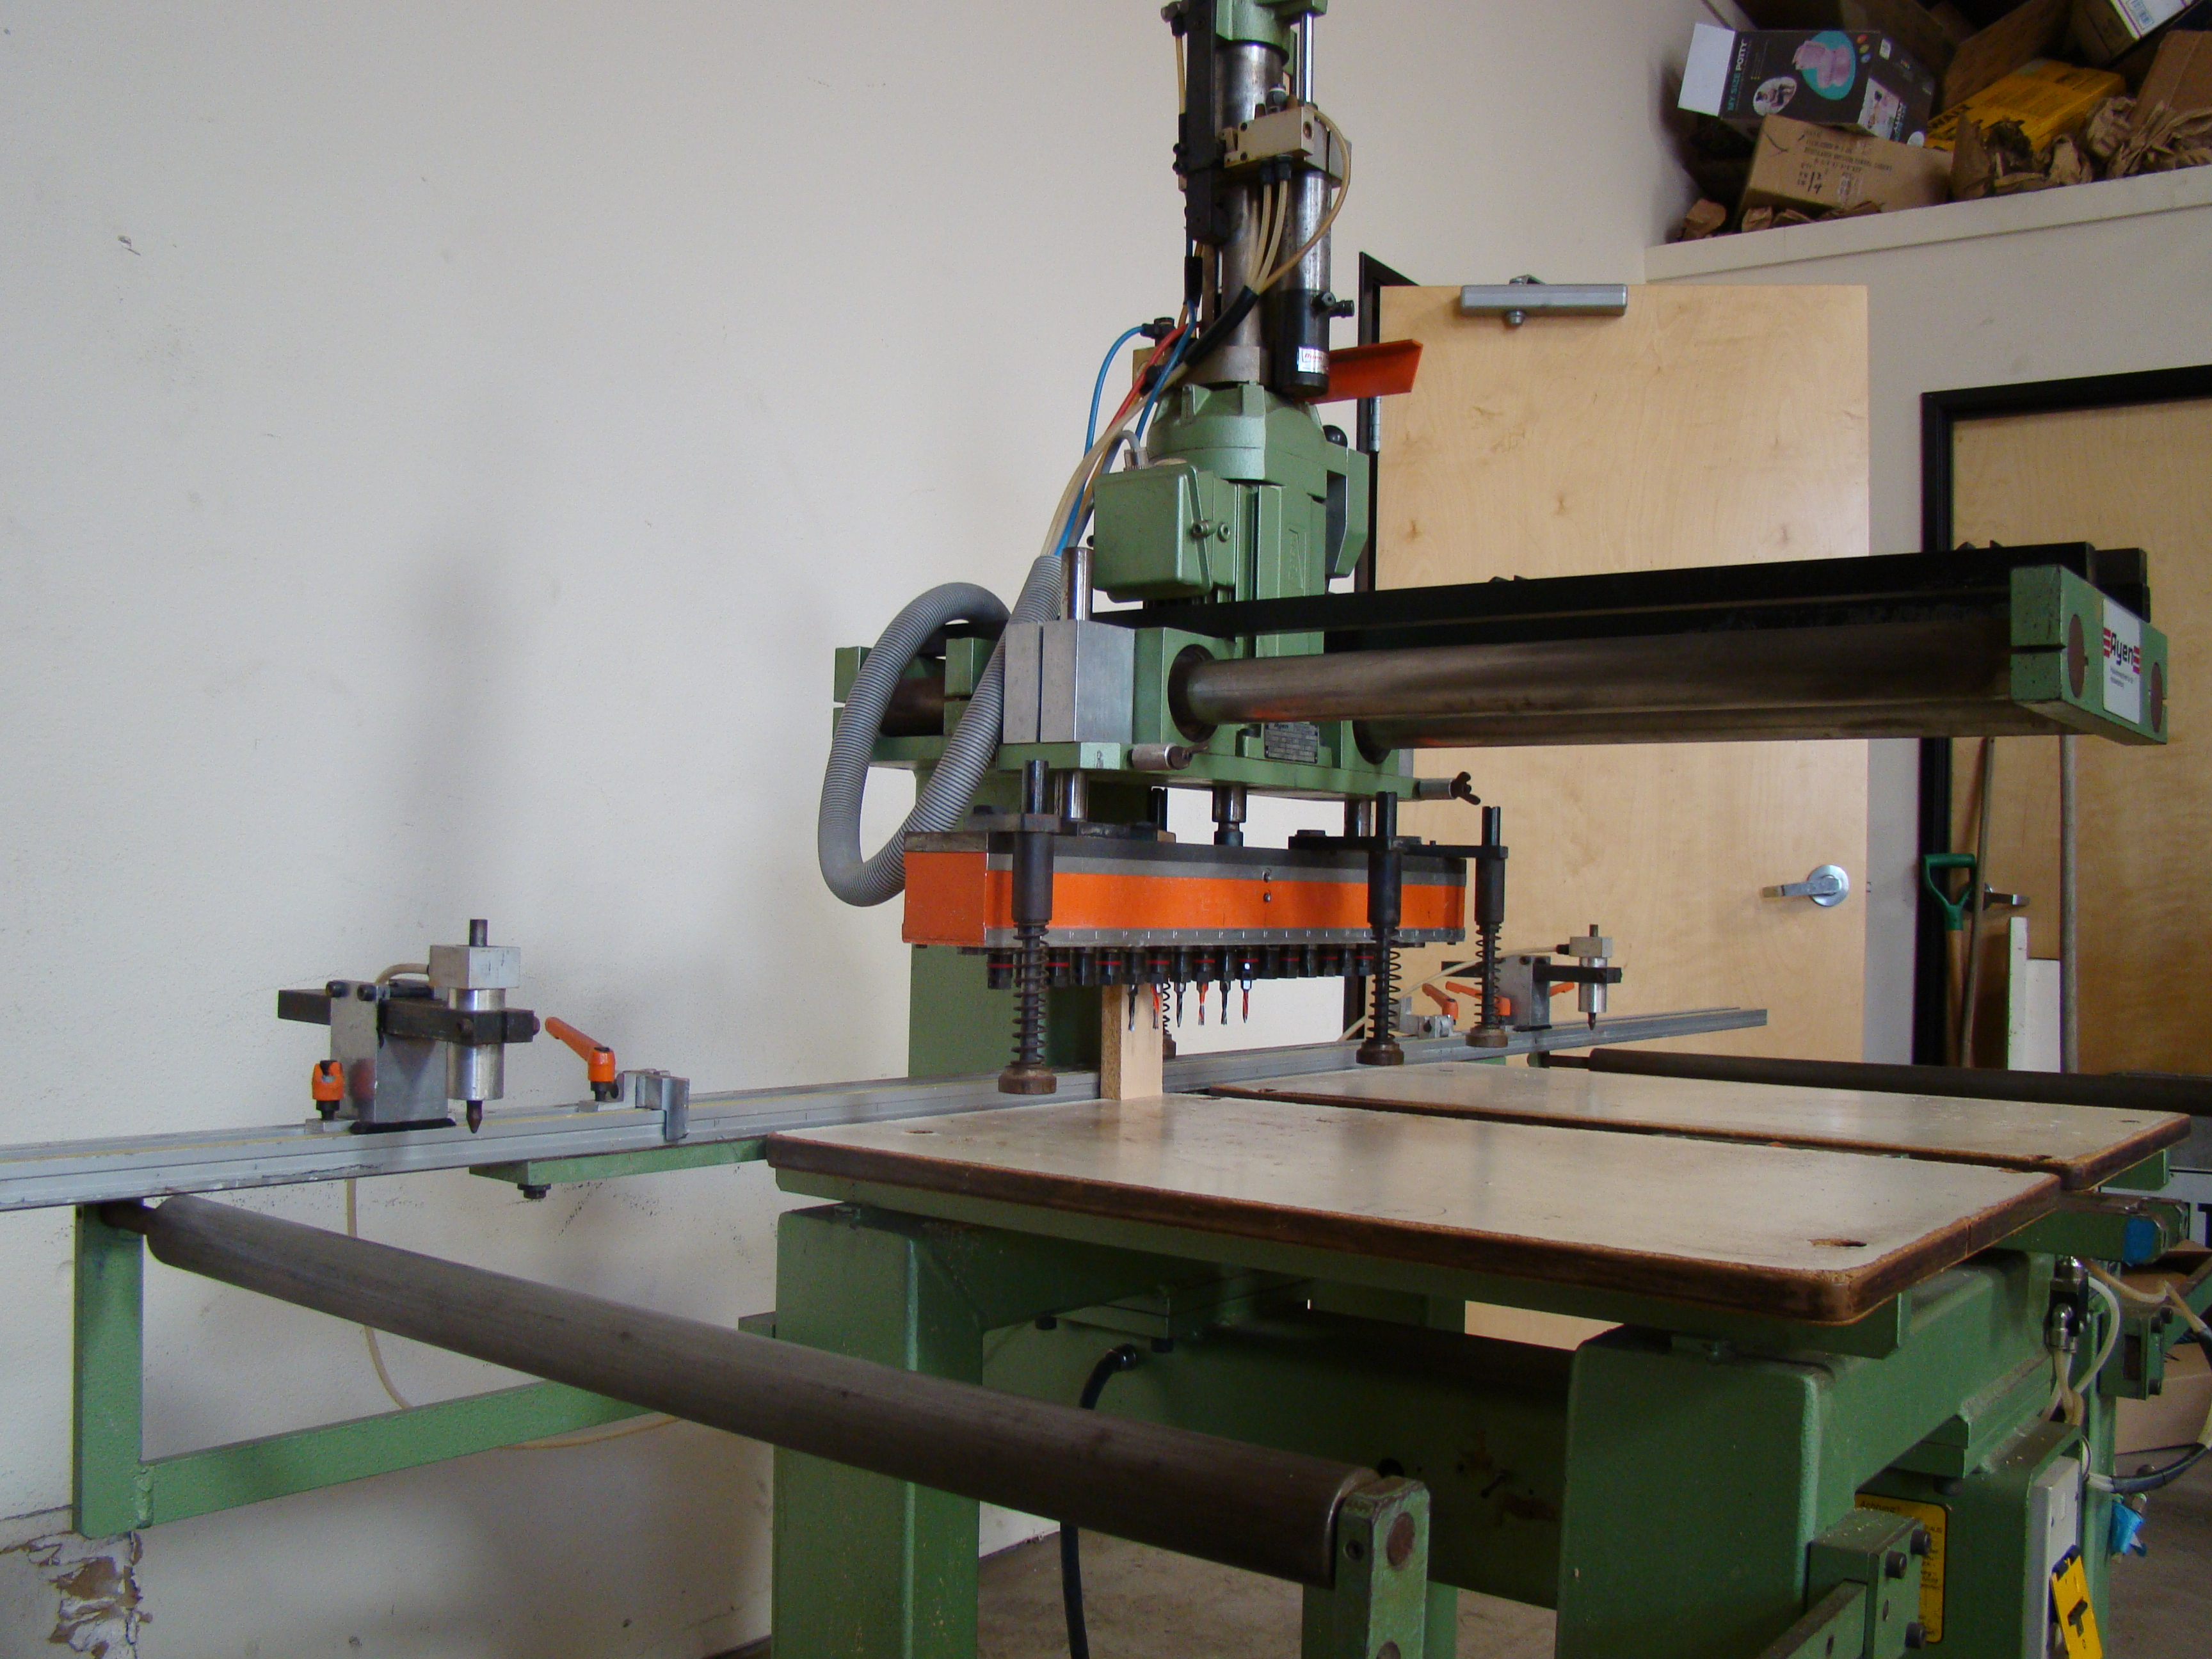 Ayen 21 Spindle Pneumatic Line Boring Machine with foot pedal, 230/460 Volt 3PH - Image 3 of 9